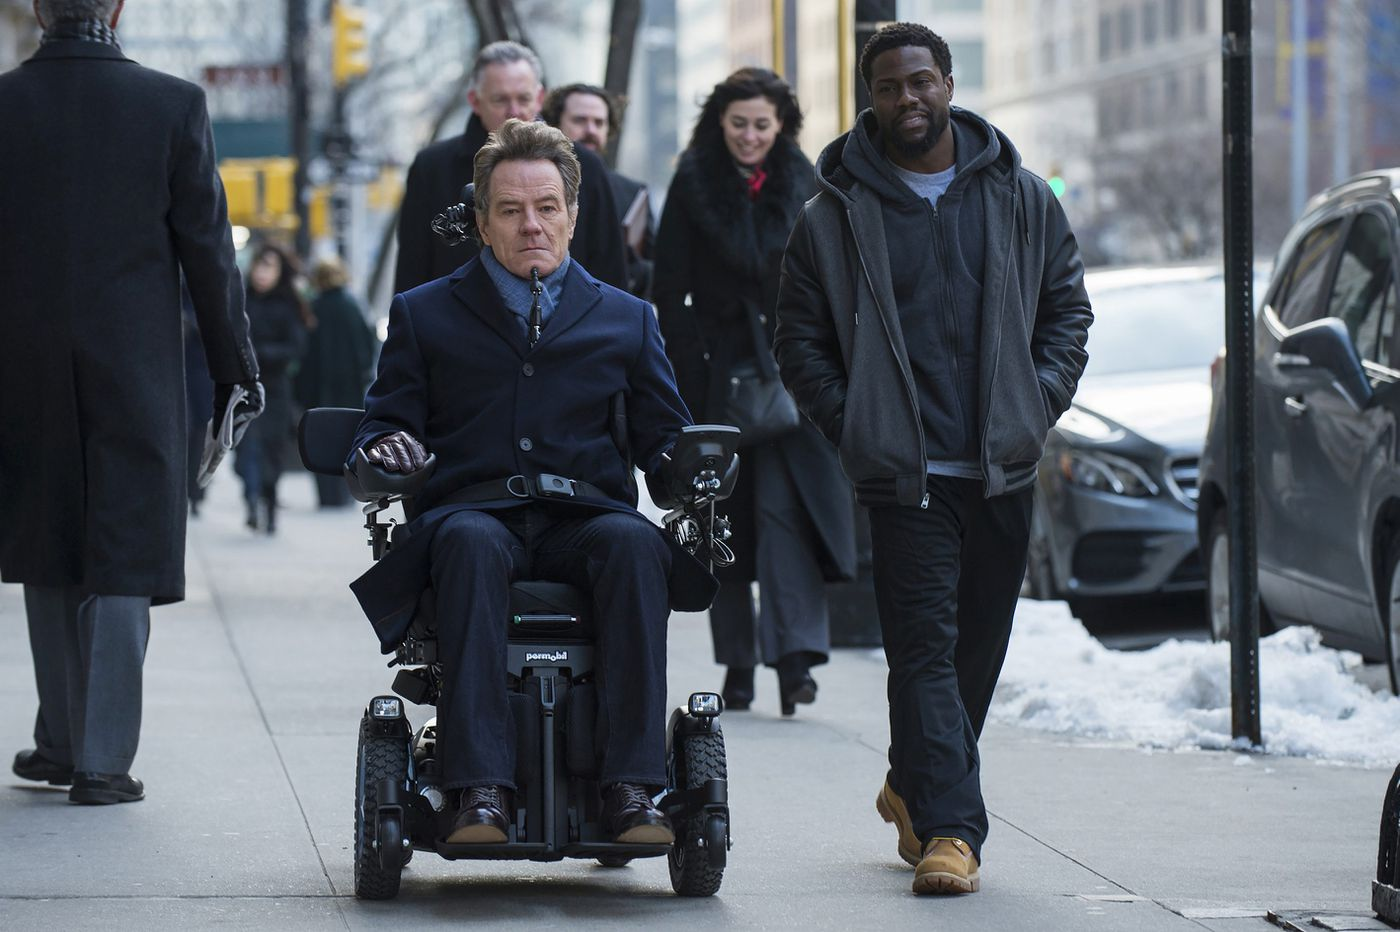 Philly-filmed 'The Upside,' starring Kevin Hart and Bryan Cranston, gets first trailer